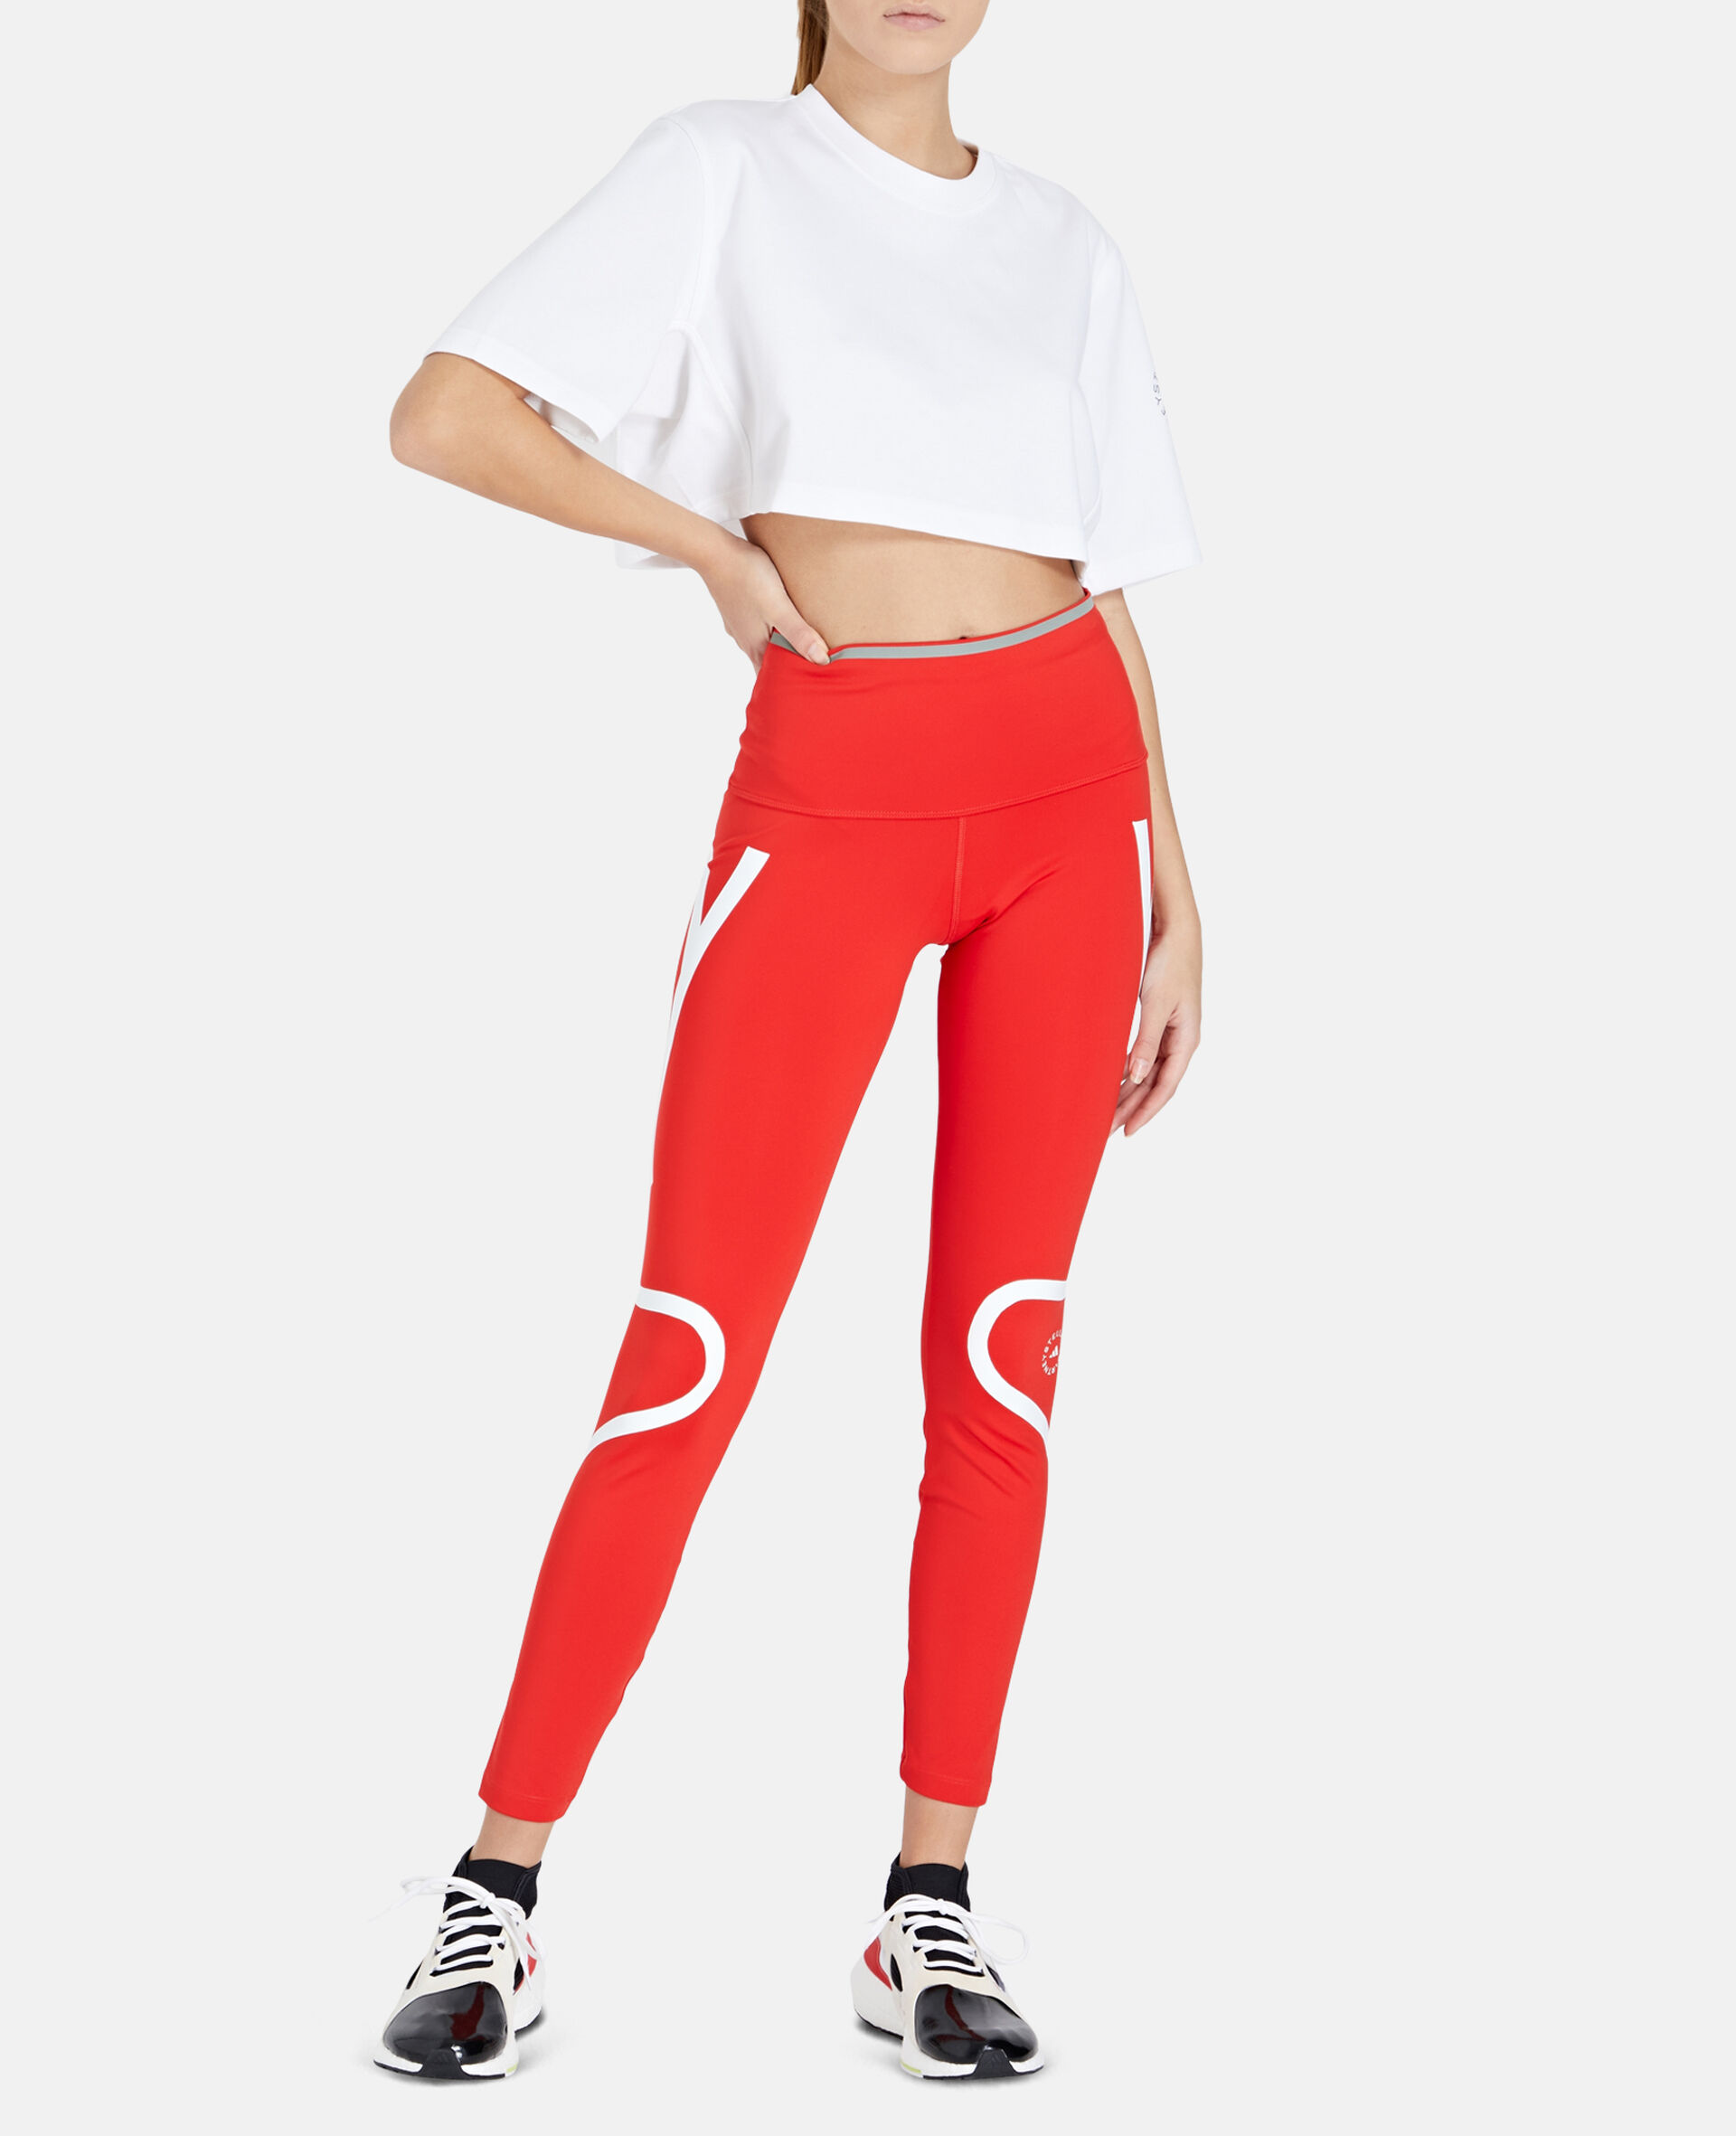 TruePace Long Running Tights-Red-large image number 1